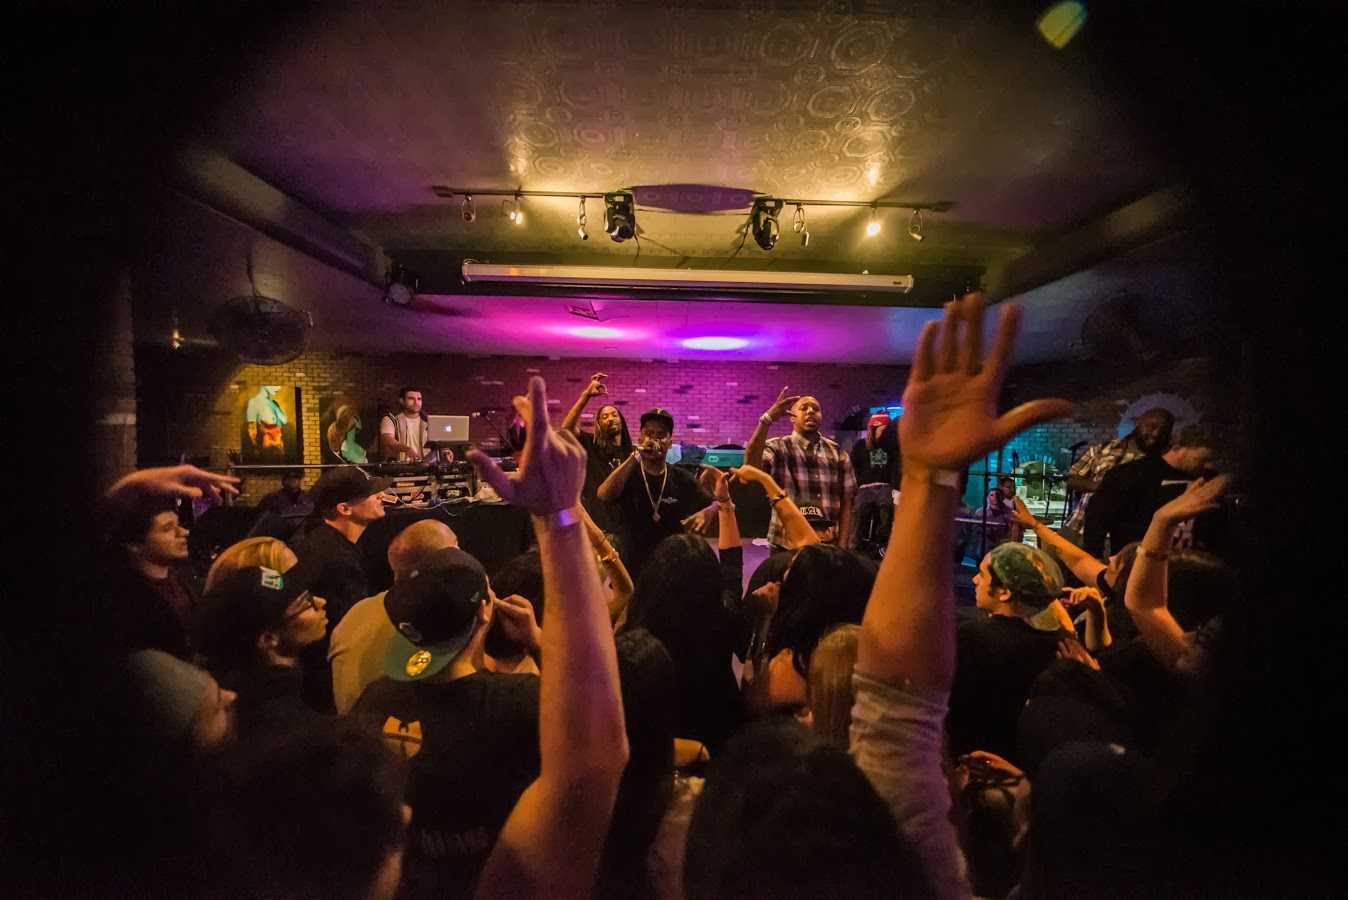 Fashawn Celebrated His 25th Year Repping Central California At The Cellar Door Night Of Friday Oct 24 And Arroz Y Frijoles Music Was There